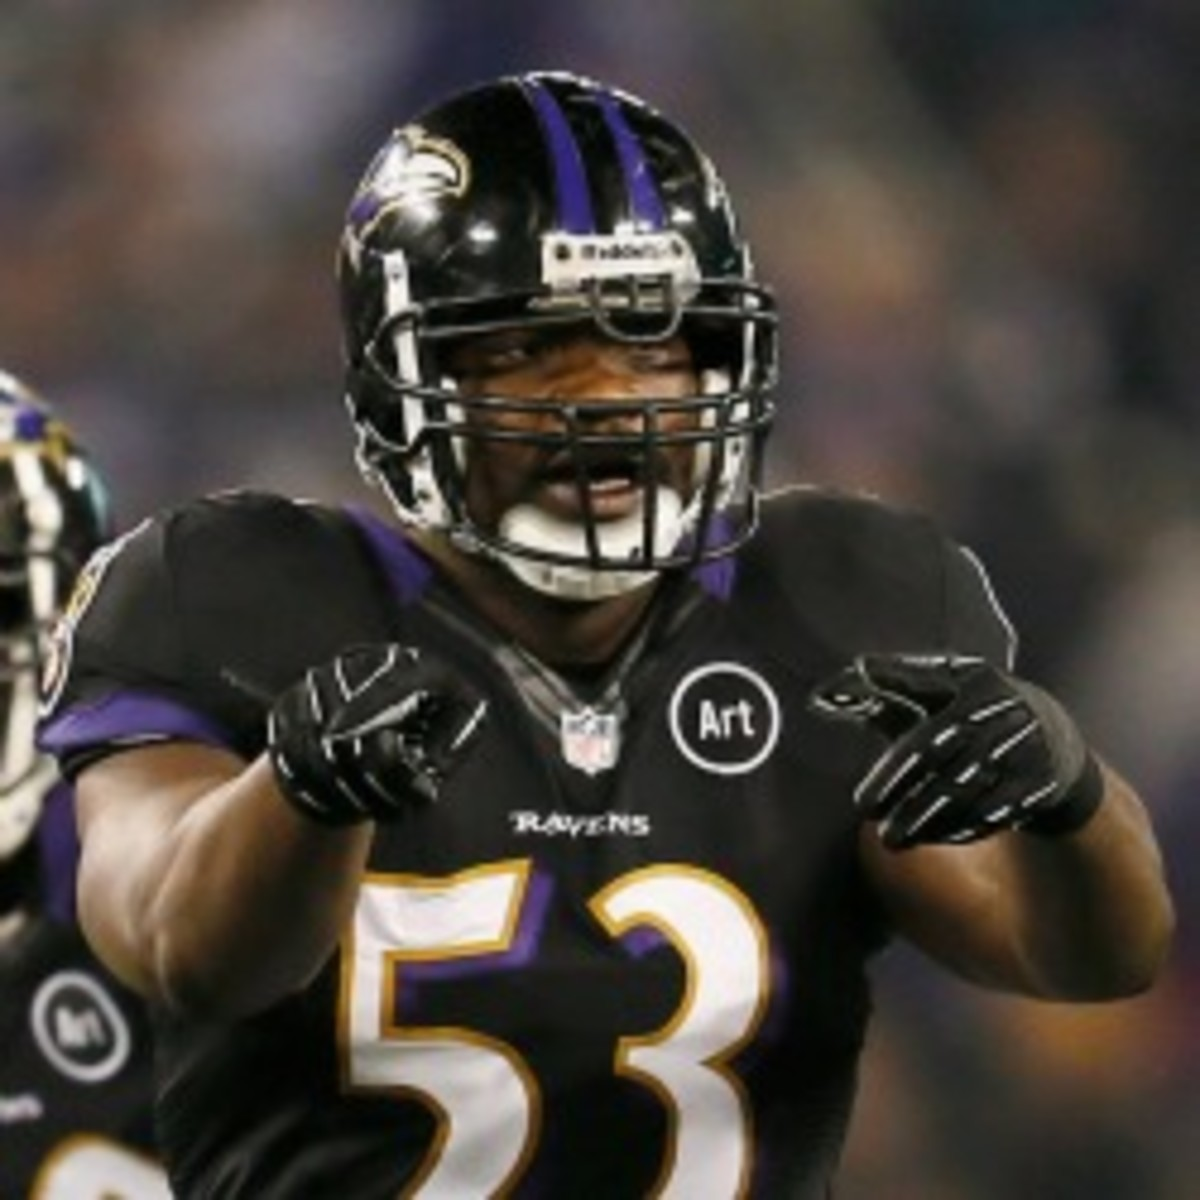 Ravens linebacker Jameel McClain will miss the rest of the season with a spinal injury. (Rob Carr/Getty Images)